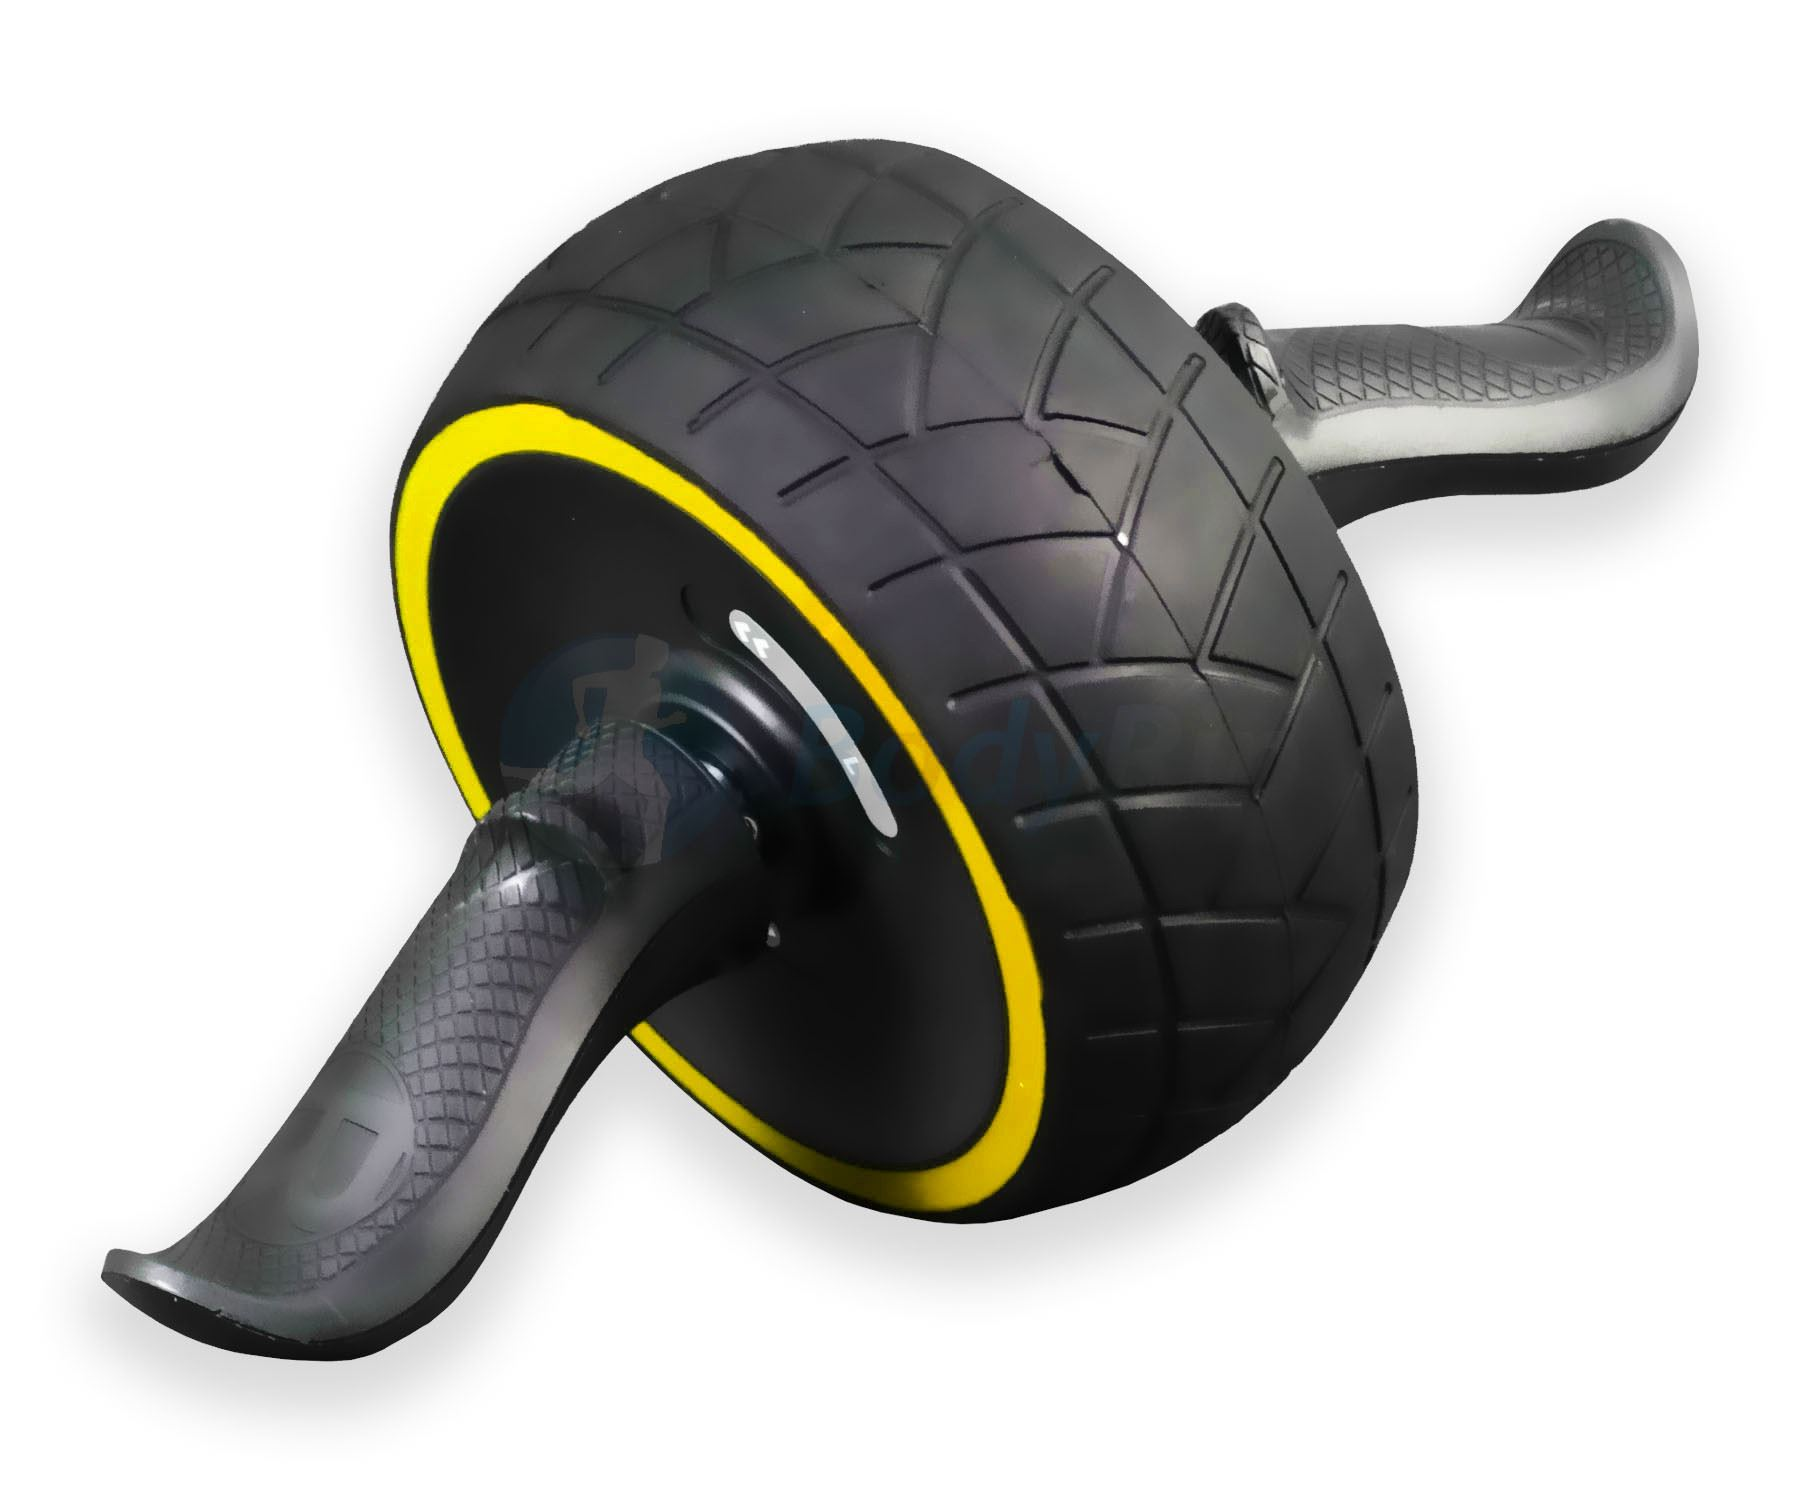 NUOVO-POTENTE-potere-ADDOMINALI-Carver-AB-HAND-GRIP-roller-wheel-HOME-GYM miniatura 10